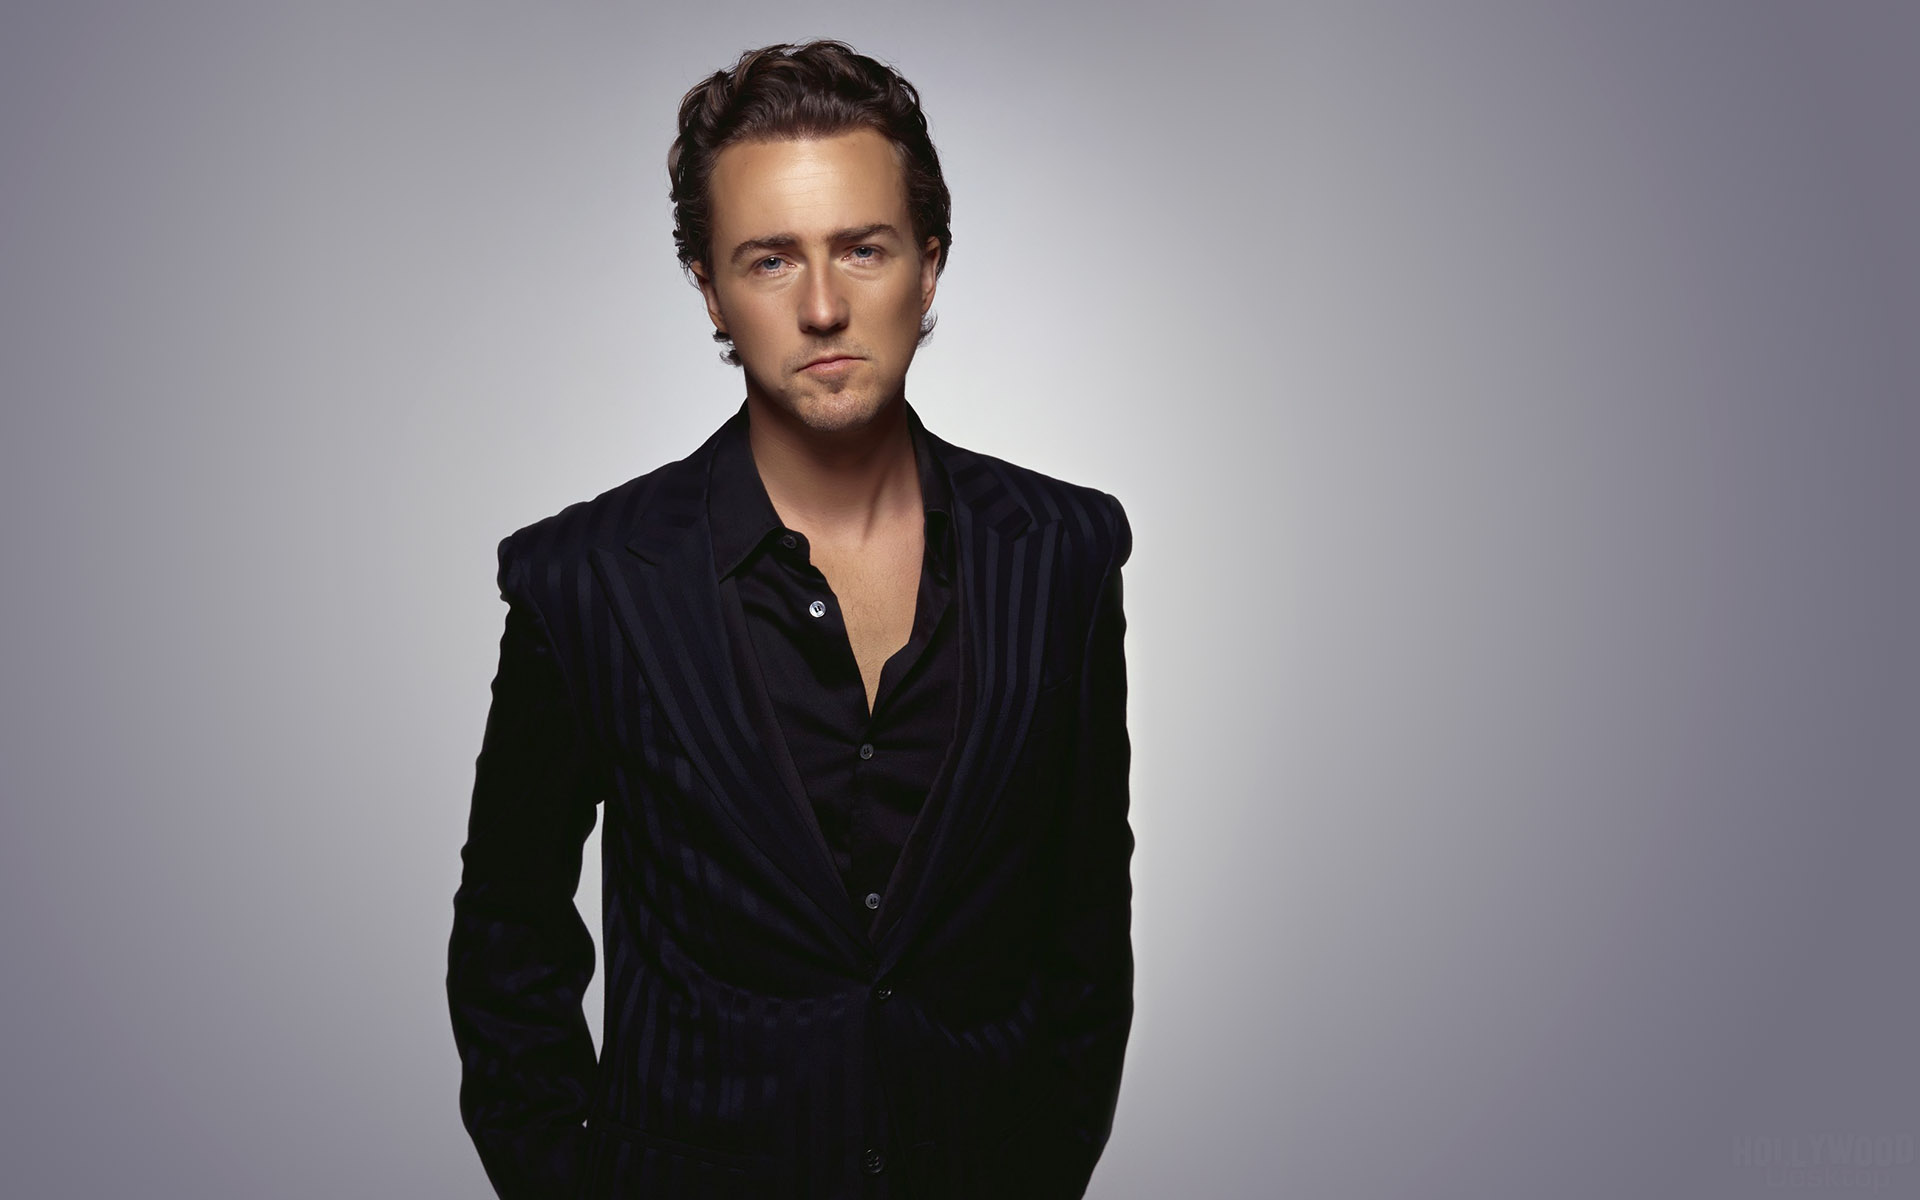 Edward Norton Wallpaper HD